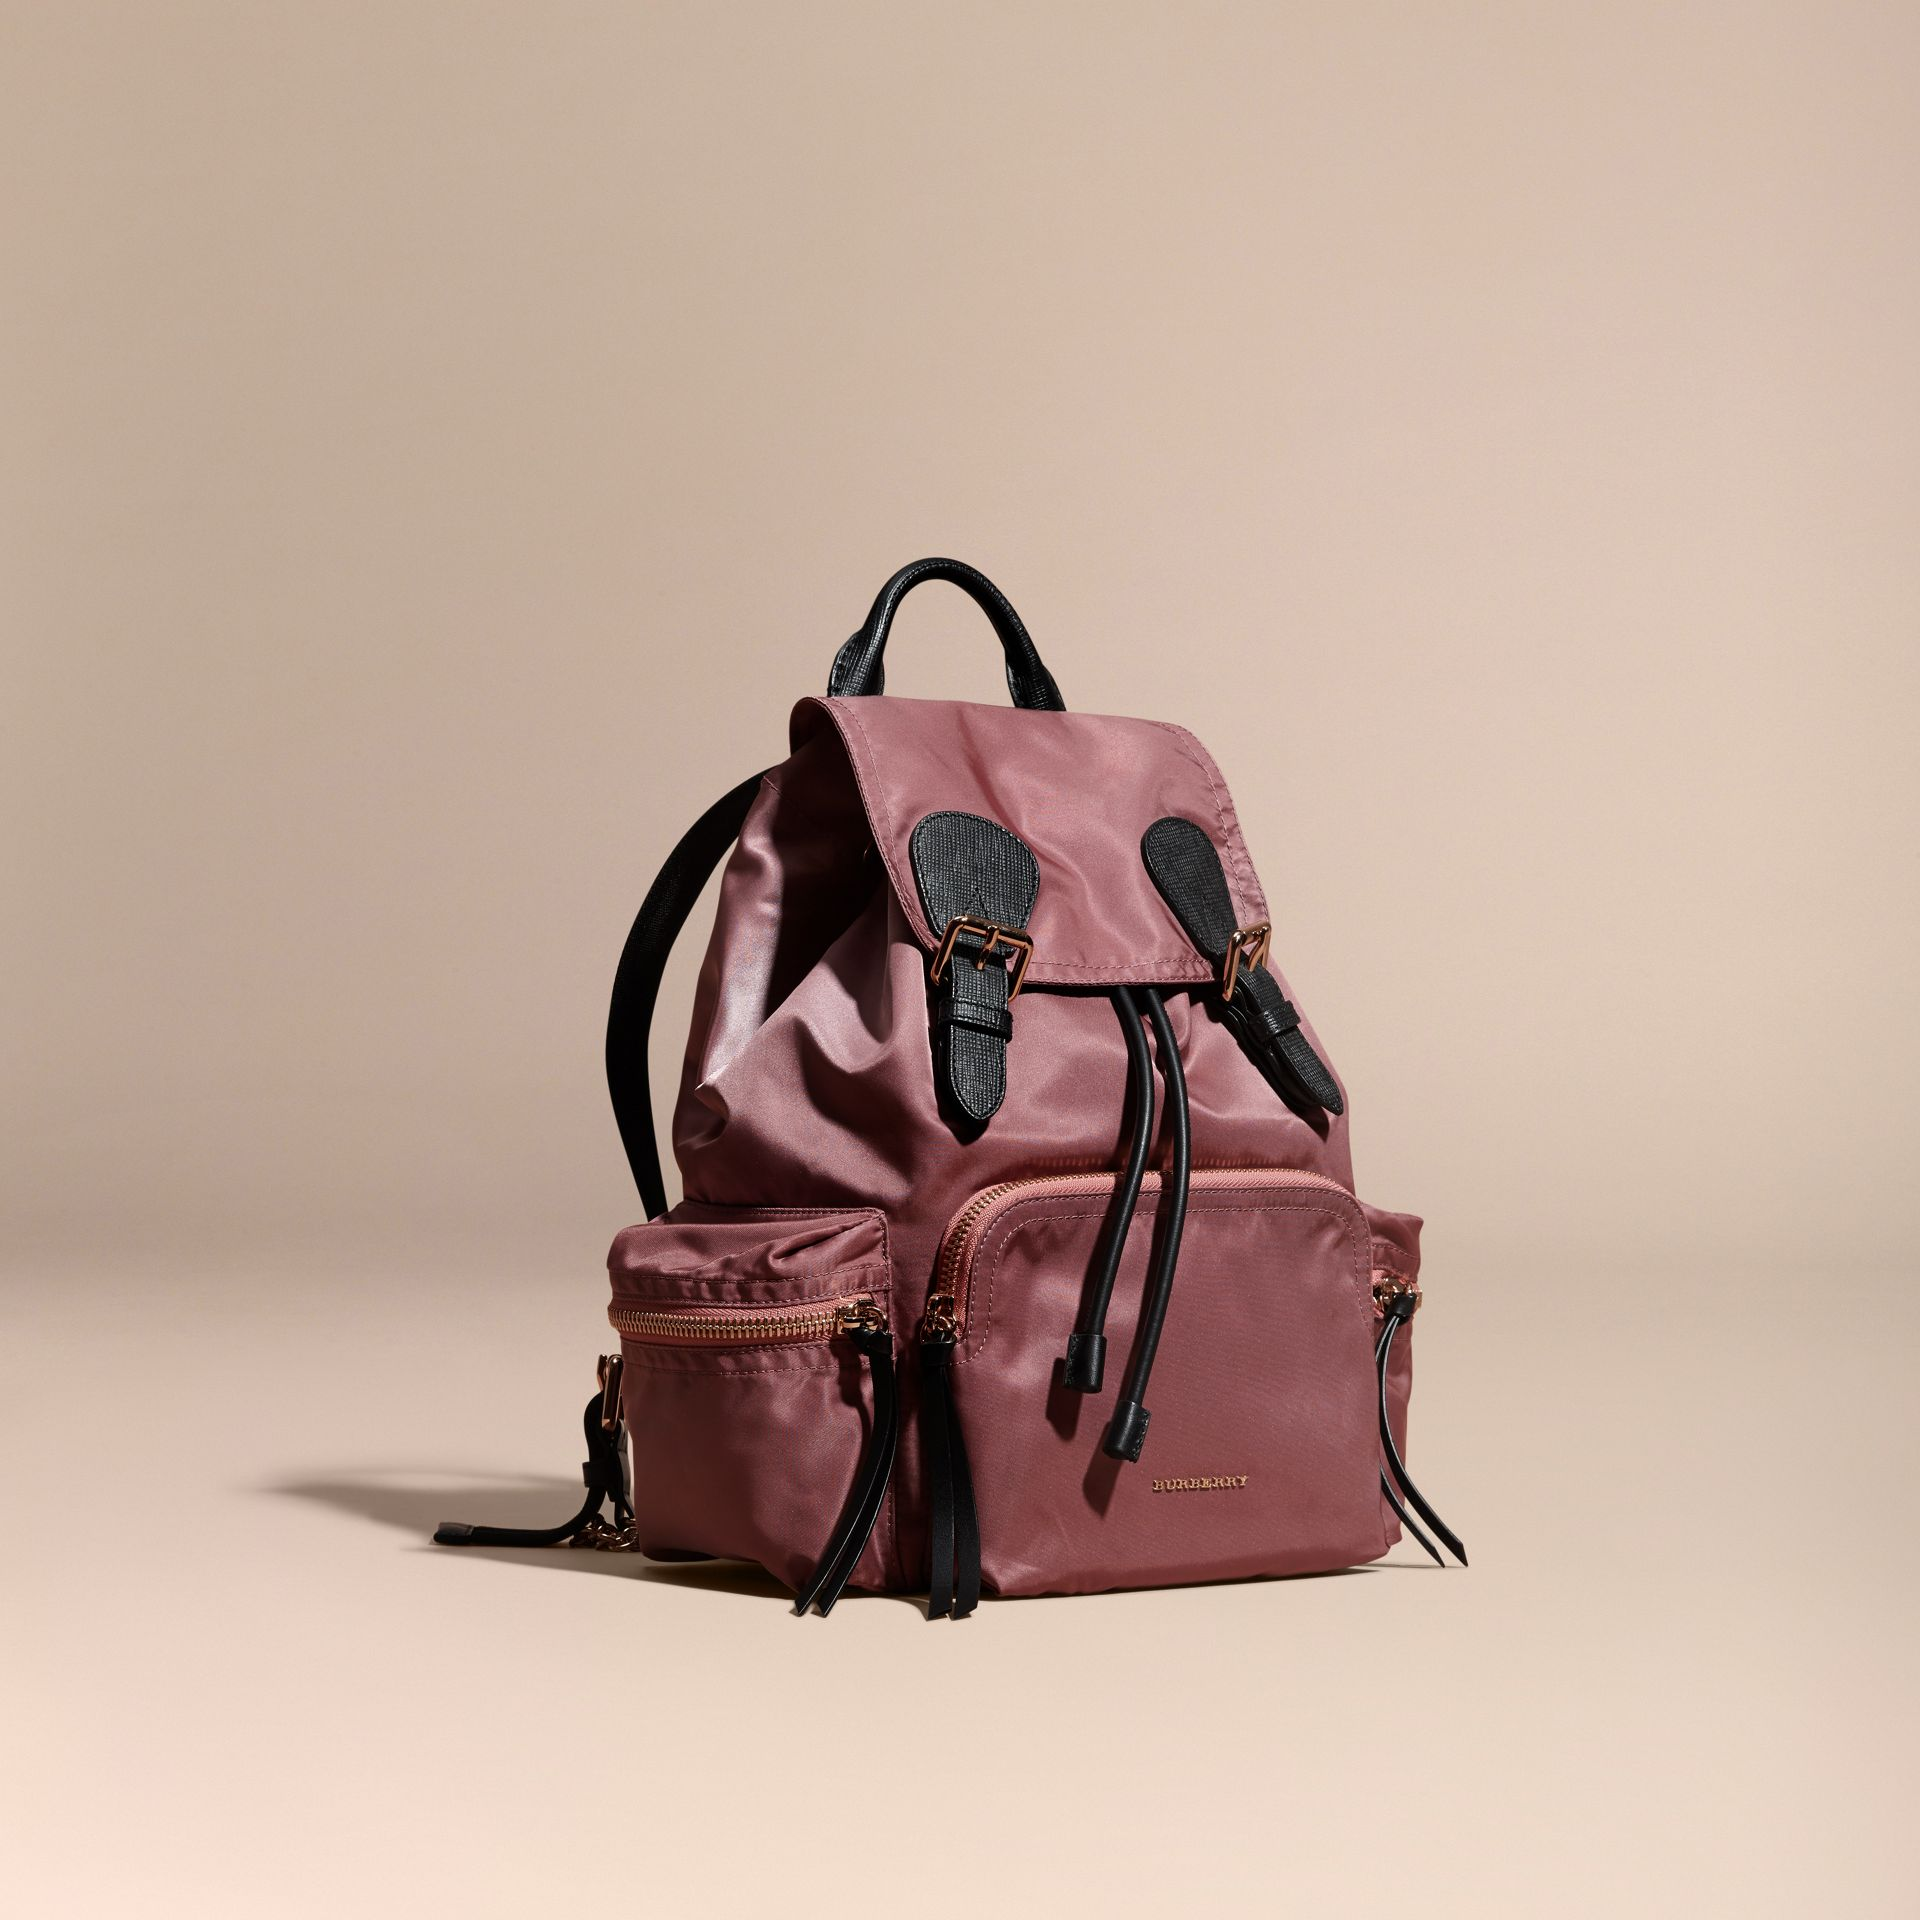 Mauve pink The Medium Rucksack in Technical Nylon and Leather Mauve Pink - gallery image 1